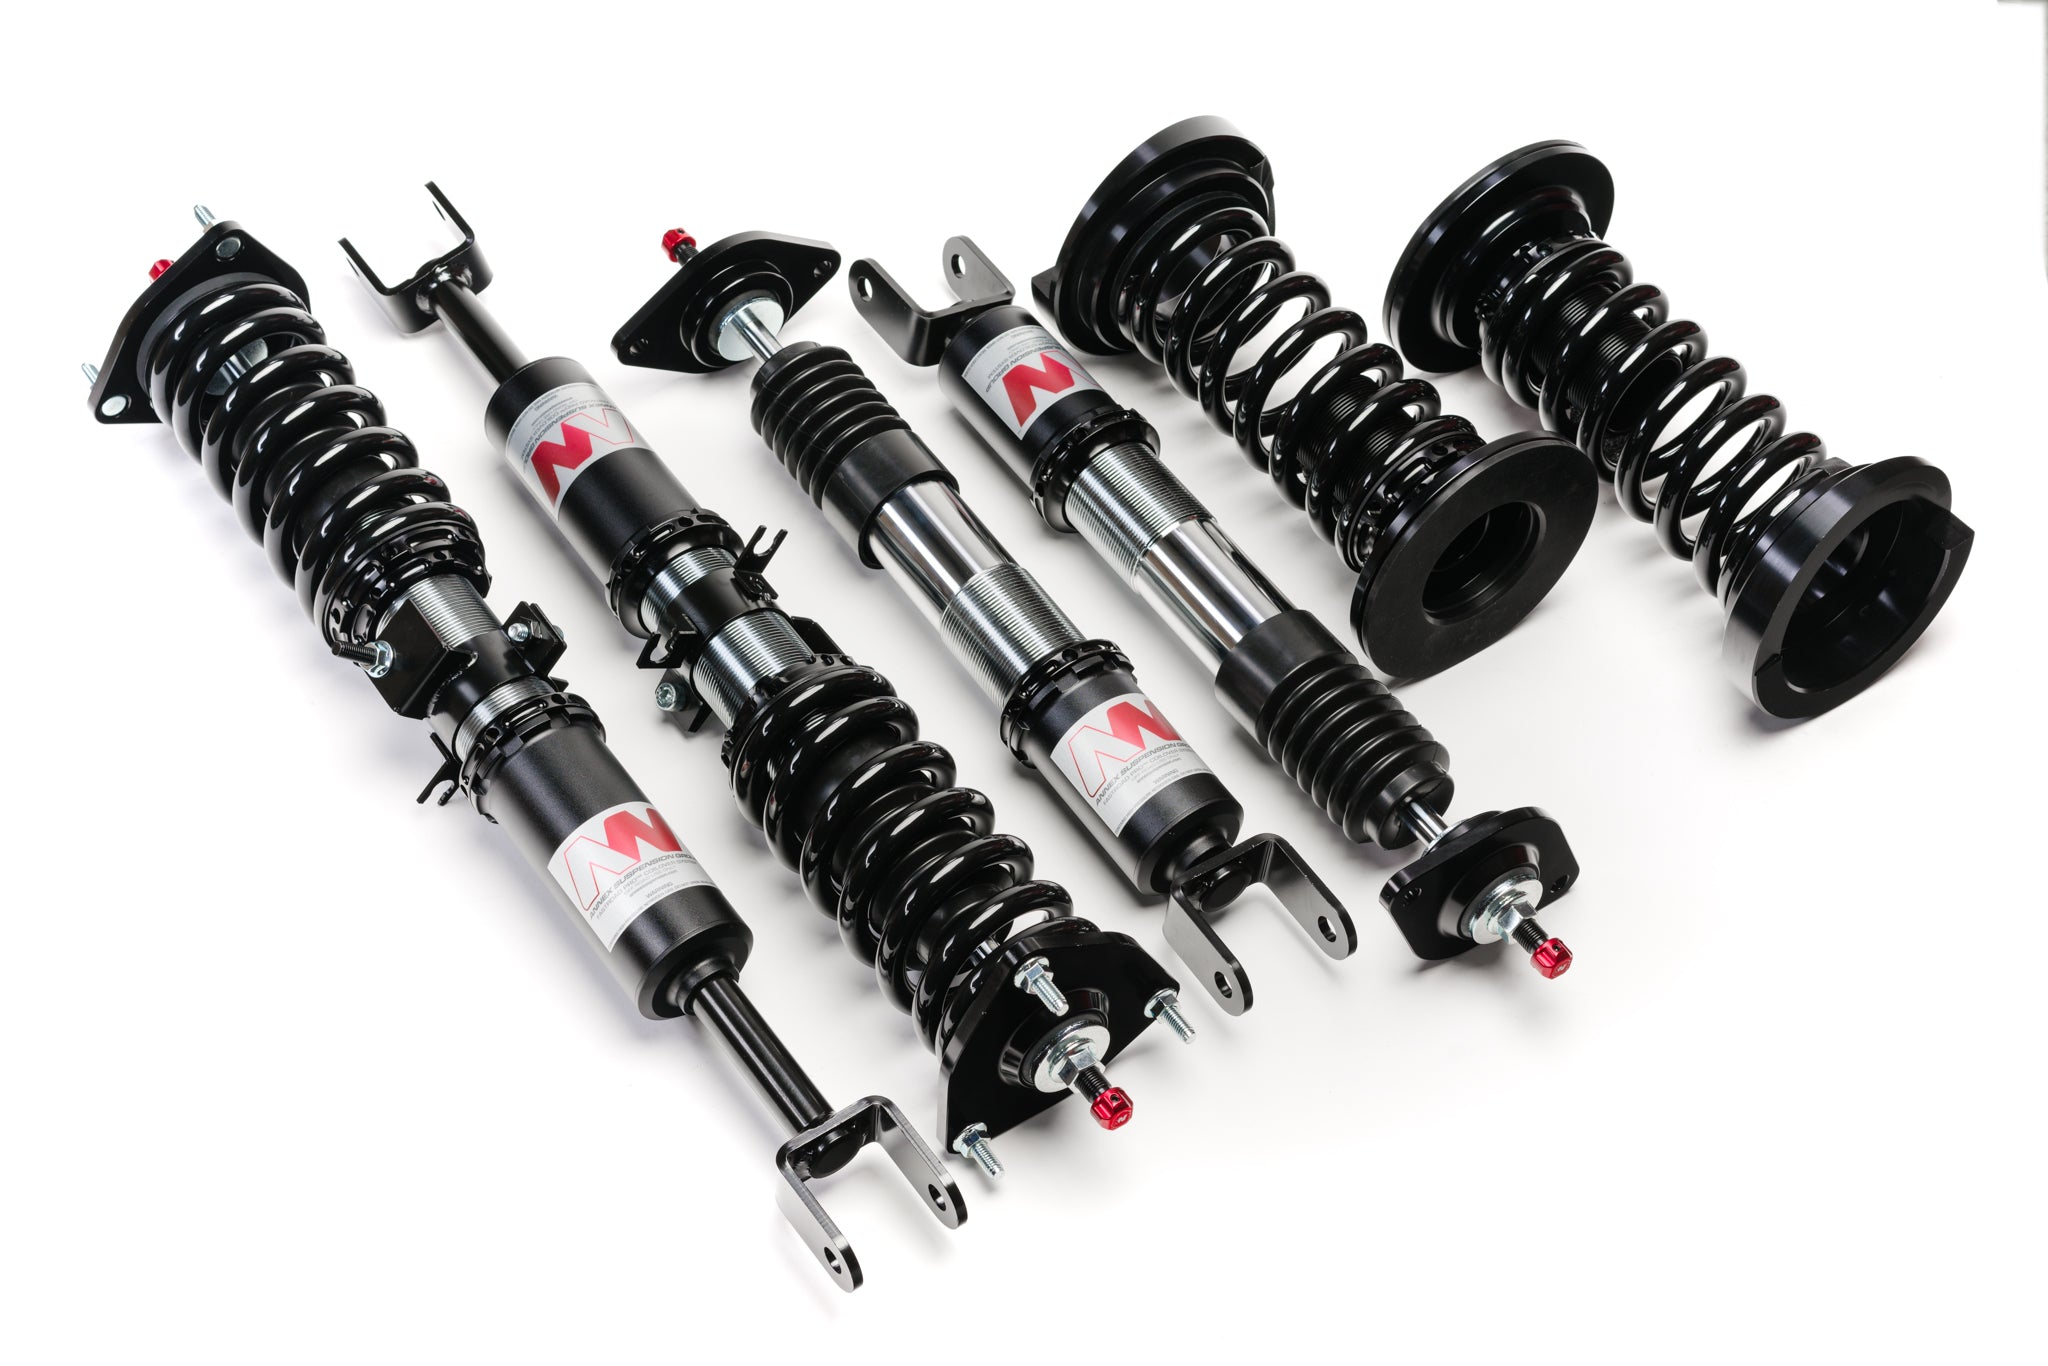 Fastroad Pro Coilovers by Annex Suspension Infiniti 2003-2006 G35 Sedan Coilovers for Comfortable Street and Track by Annex Suspension Group 2003 2004 2005 2006